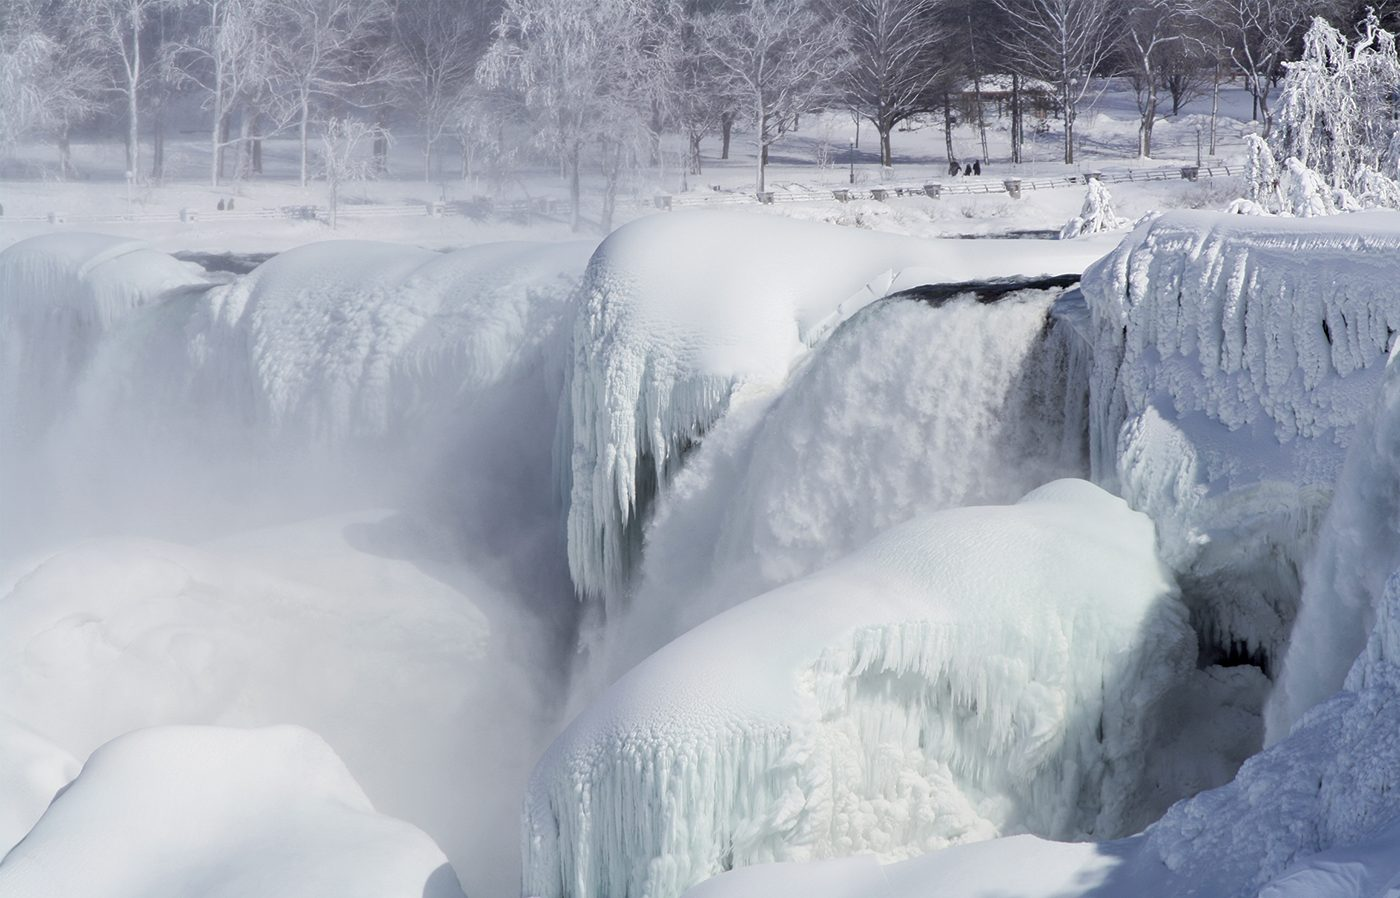 Niagara Falls In Winter - Snow And Ice